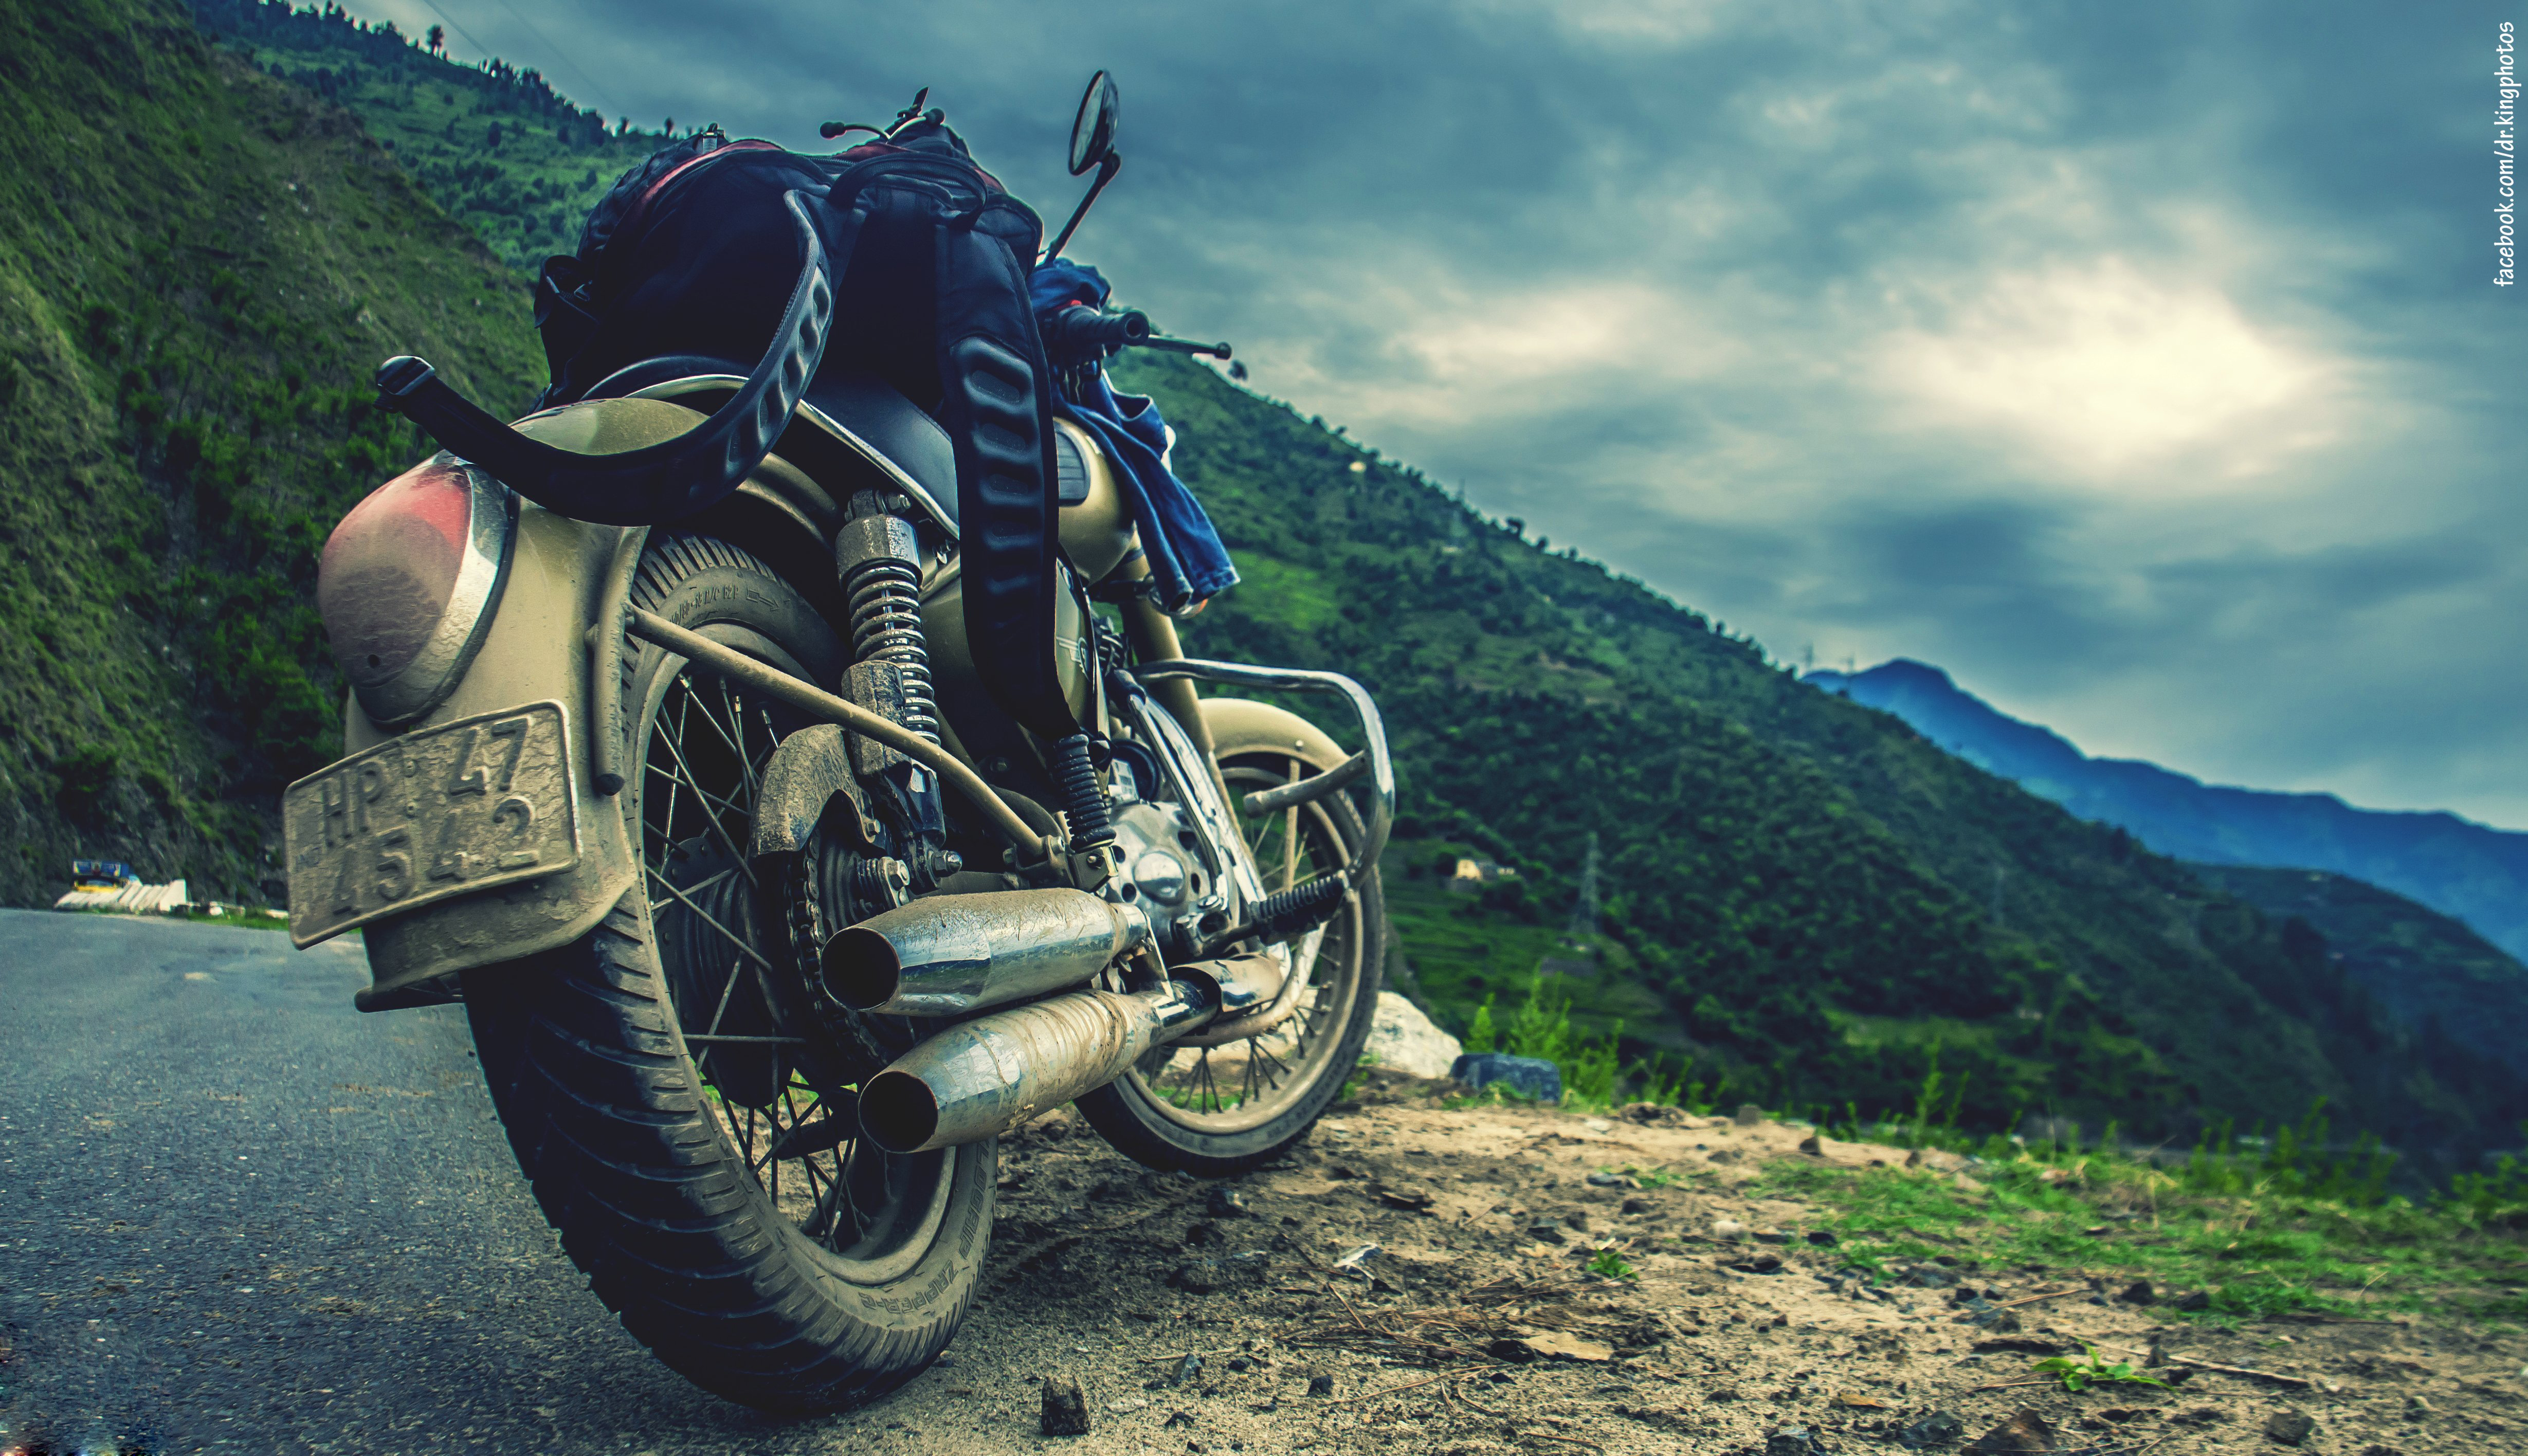 free download motorcycle backgrounds Simply Wallpaper 4917x2832